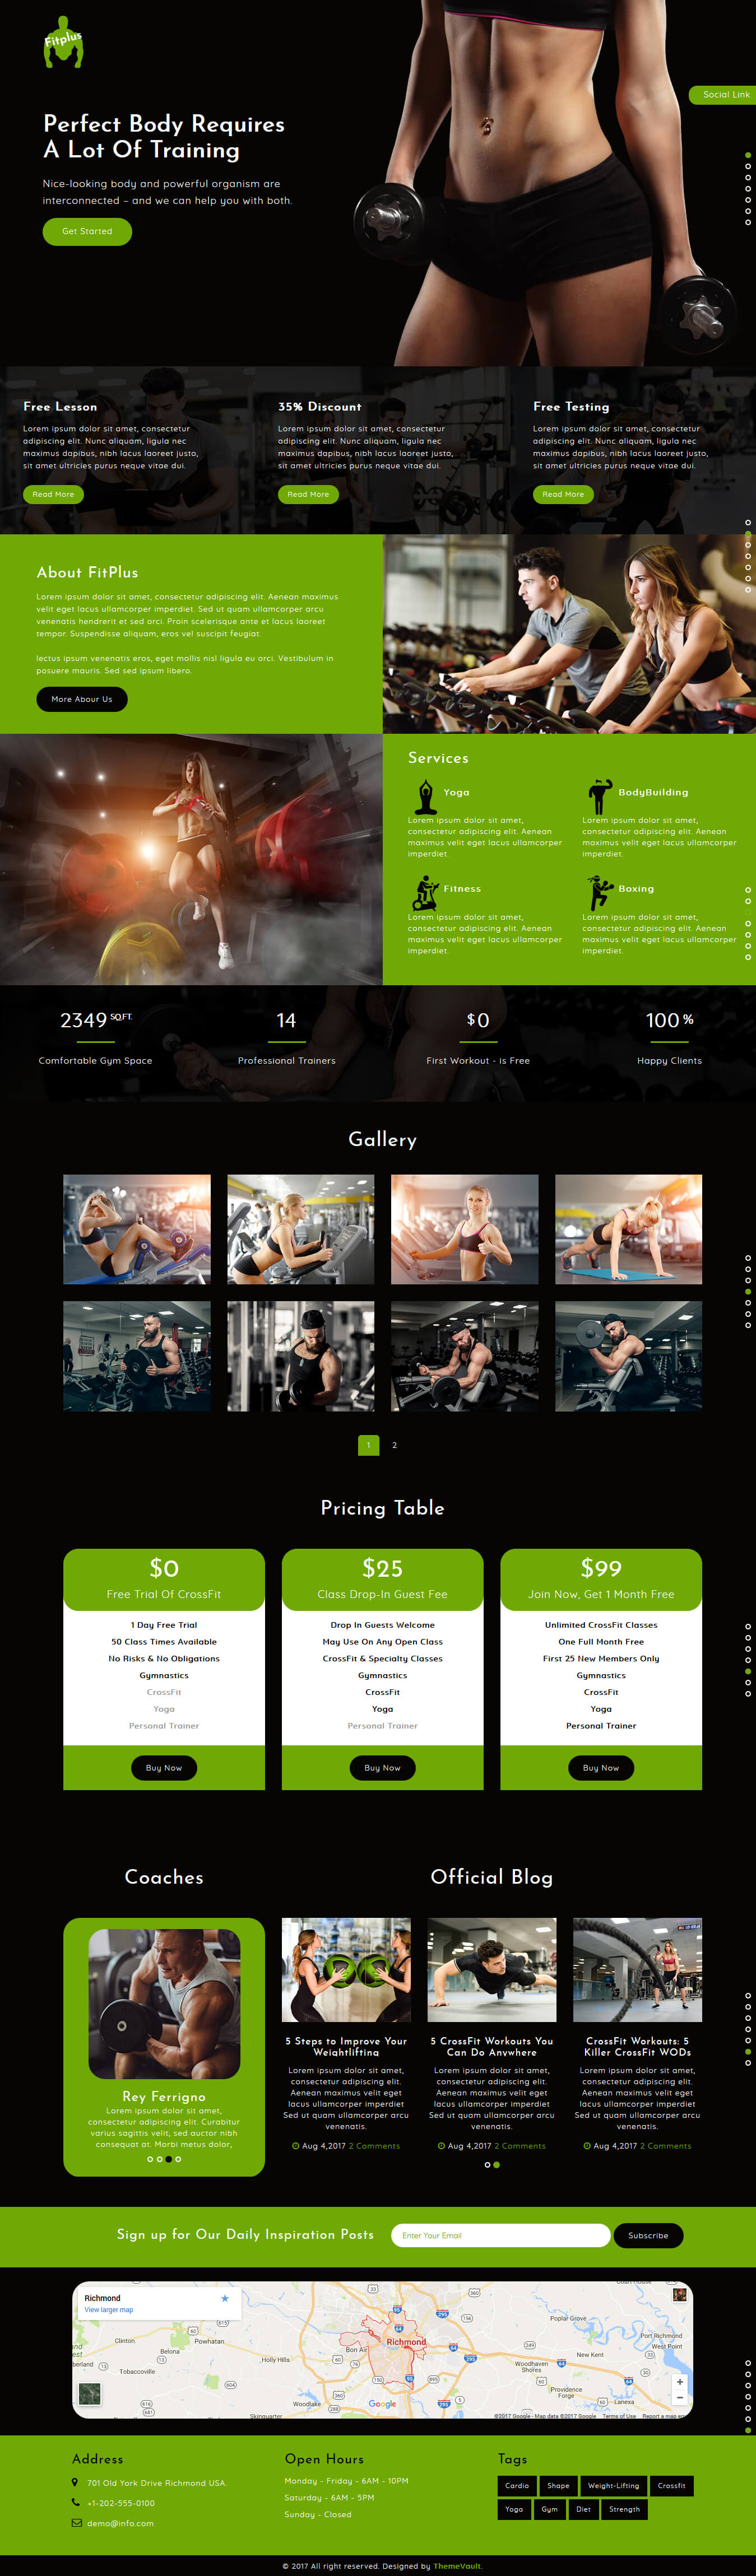 FitPlus – Free Gym Fitness Website Template Html5